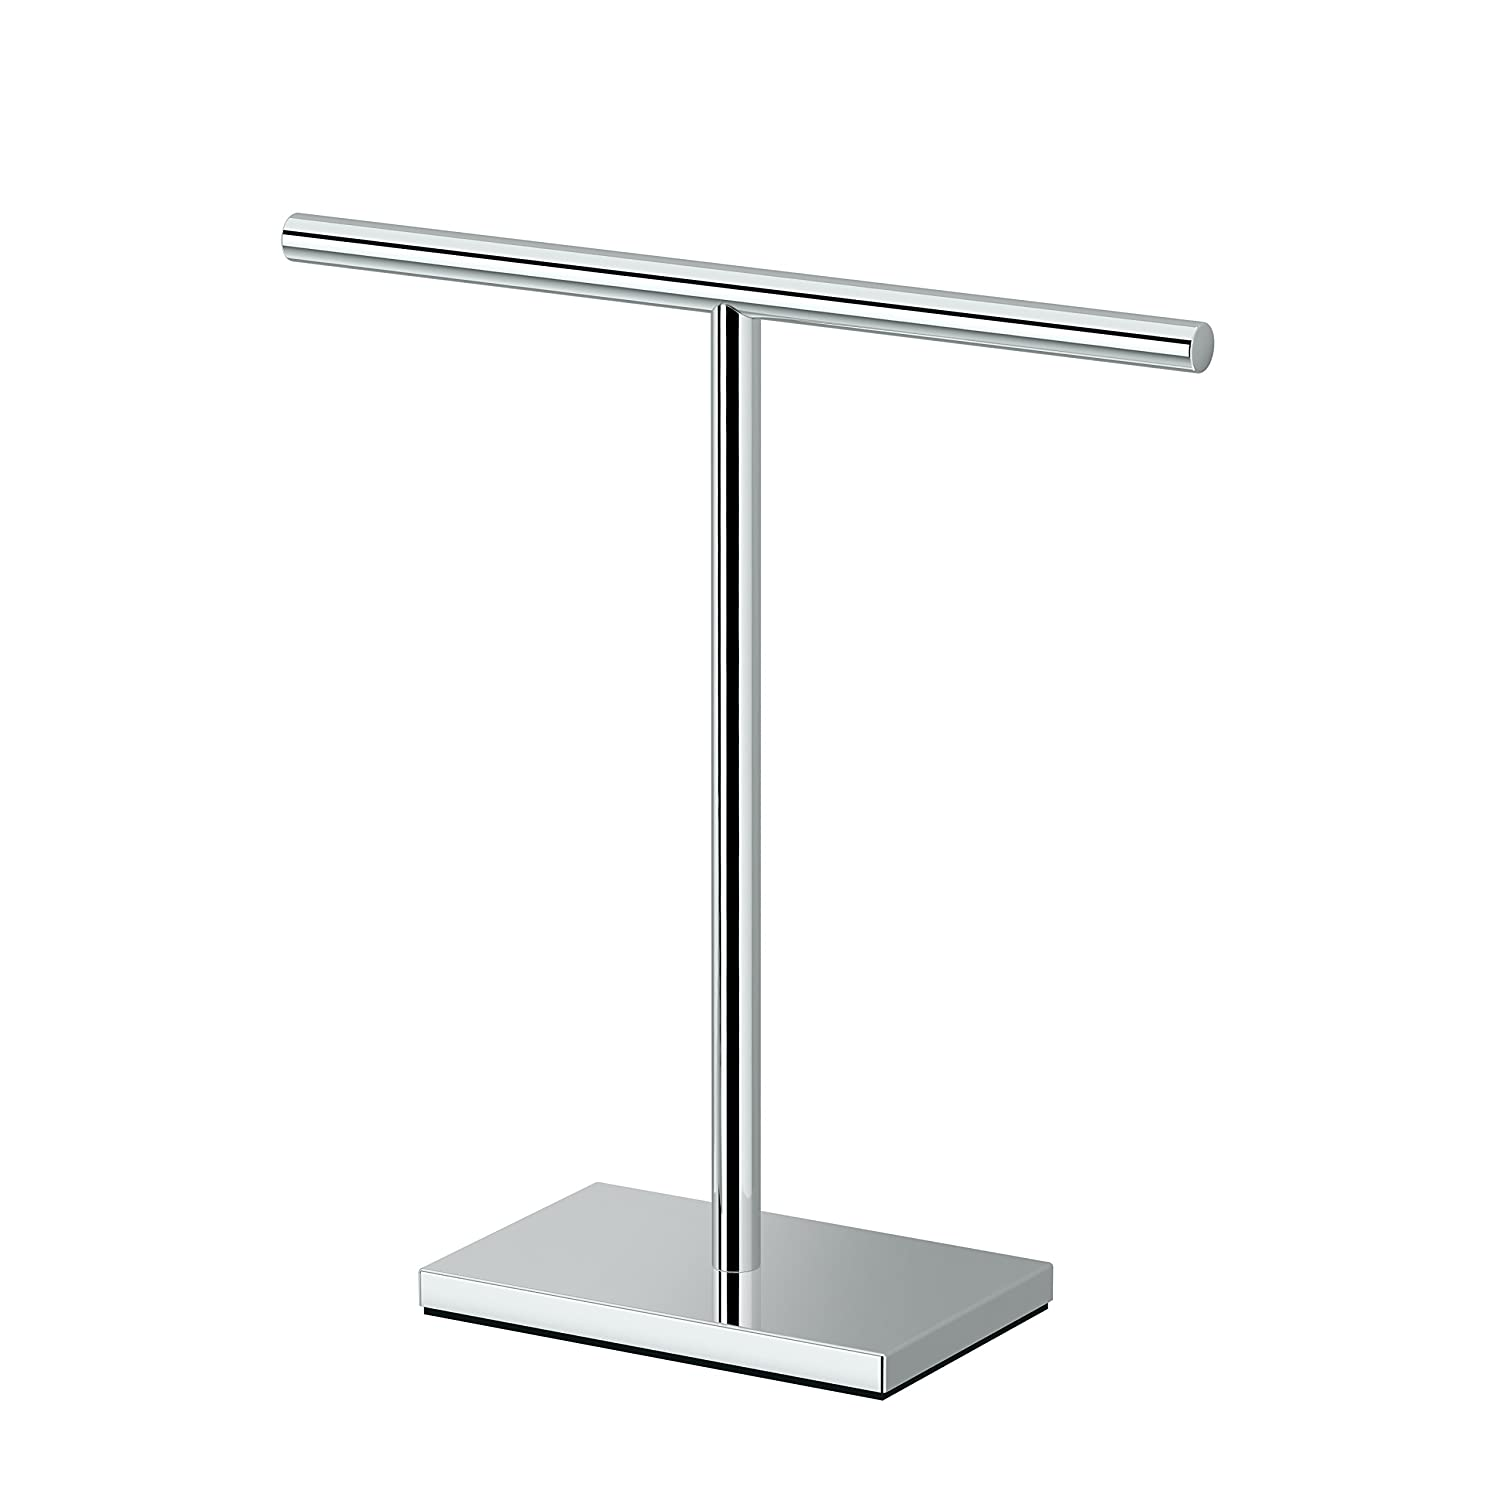 Gatco 1444SN Modern Rectangle Base Bathroom Counter Top Hand Towel Holder, 11.13' Height, Satin Nickel 11.13 Height